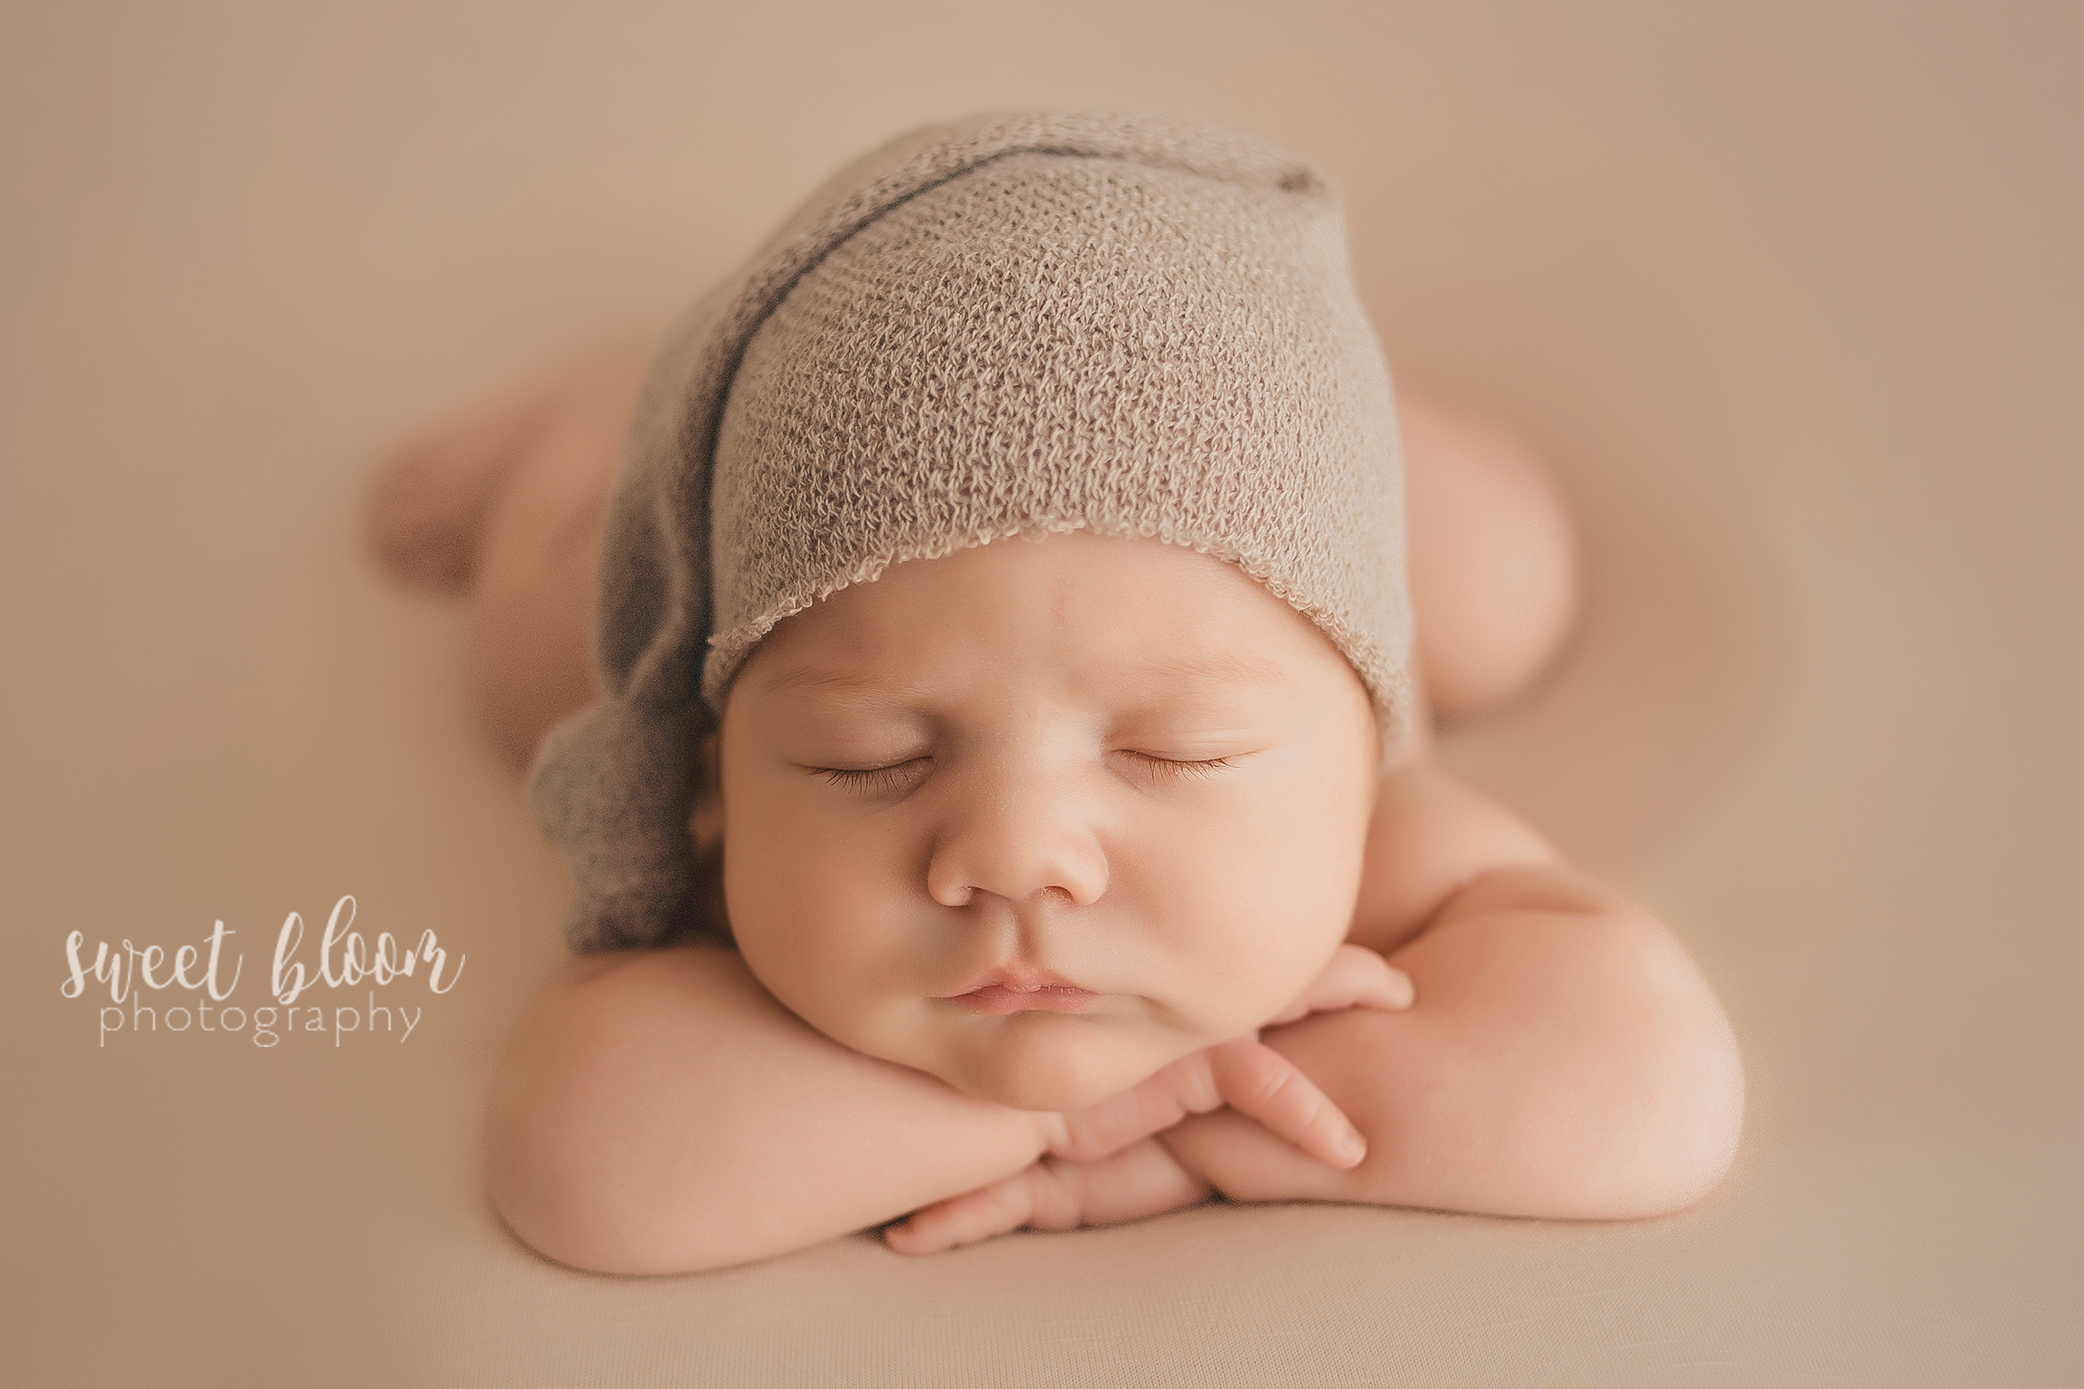 lexington ky newborn photographer in central ky.jpg